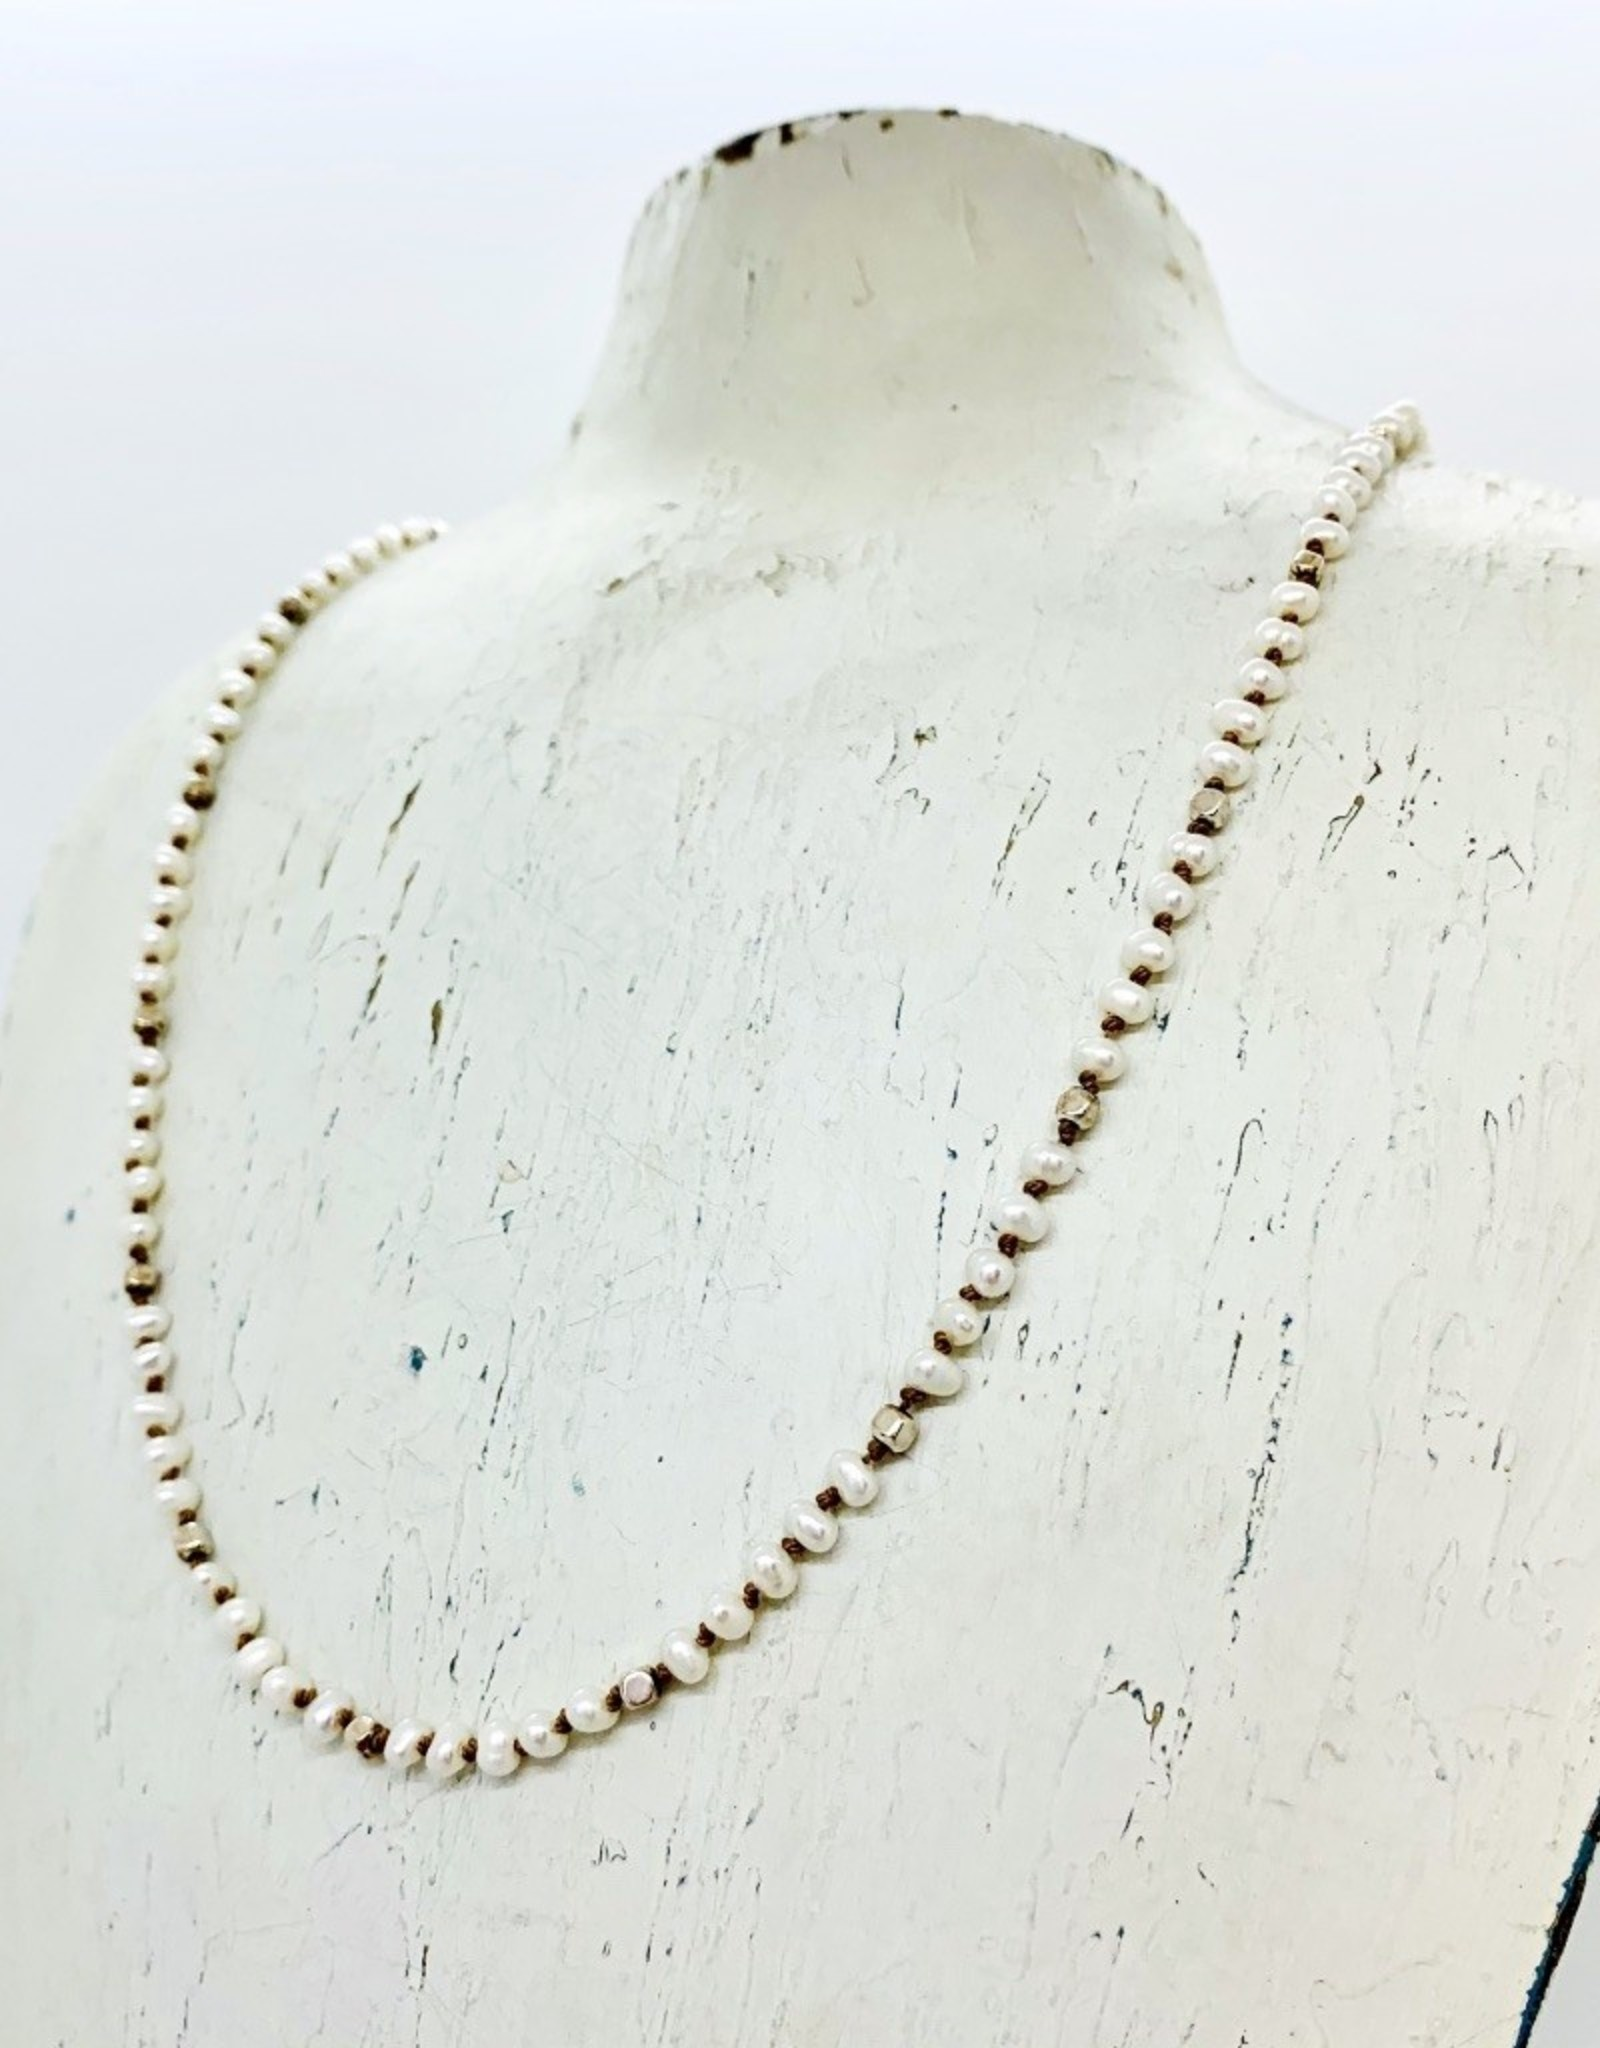 Handmade Sterling Silver Necklace with 5 white pearls, 1 shiny square pattern knotted on natural silk